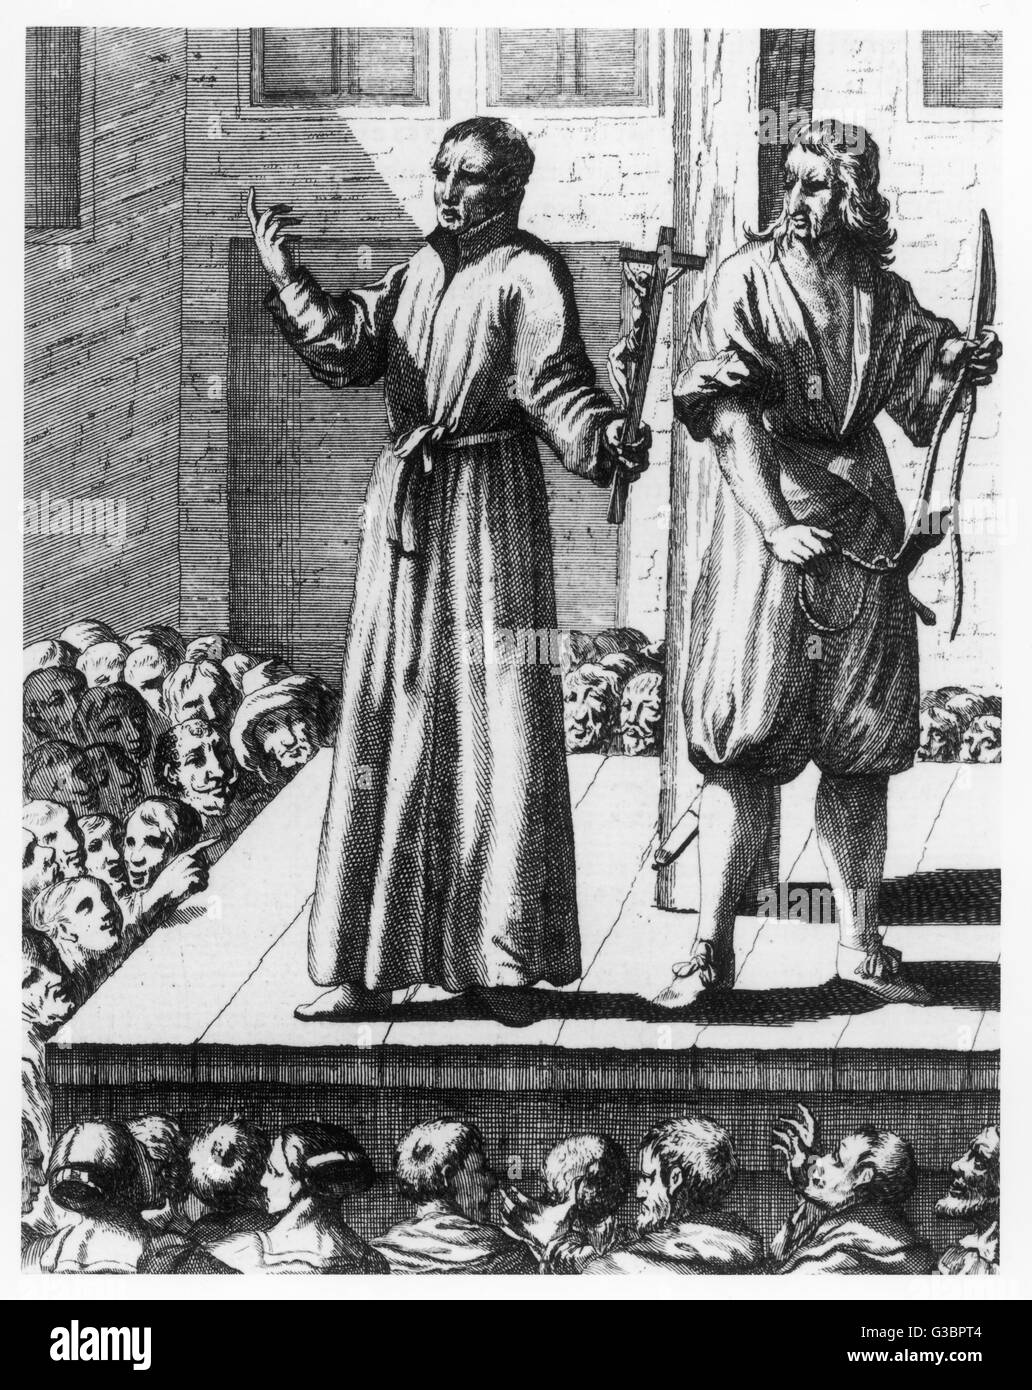 Jesuit priest Henry Garnet is  executed for complicity in the  Gunpowder Plot        Date: 1606 - Stock Image